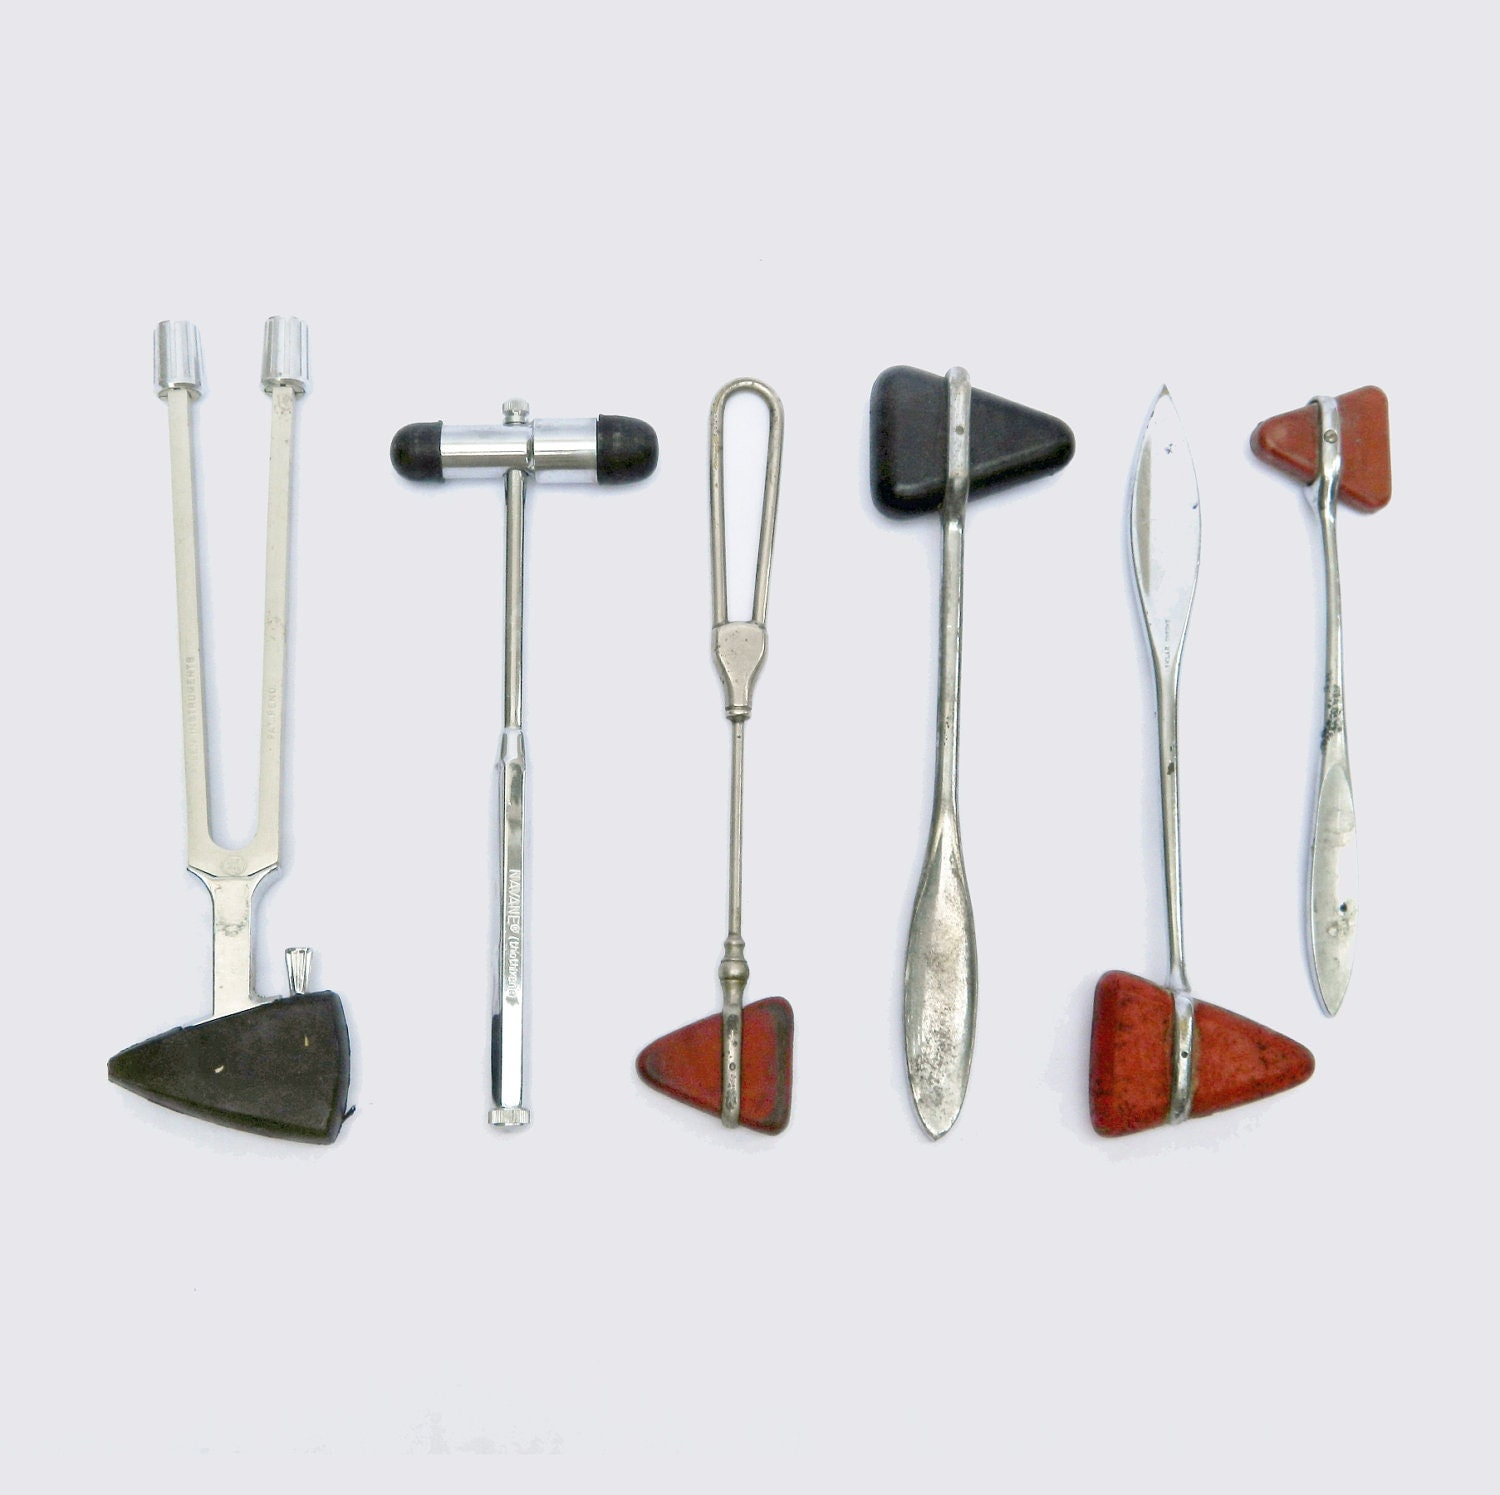 Plessors - Authentic - Vintage - Doctor - Medical Memorabillia - Reflex Hammers - Knee Knockers - Check Your Reflexes